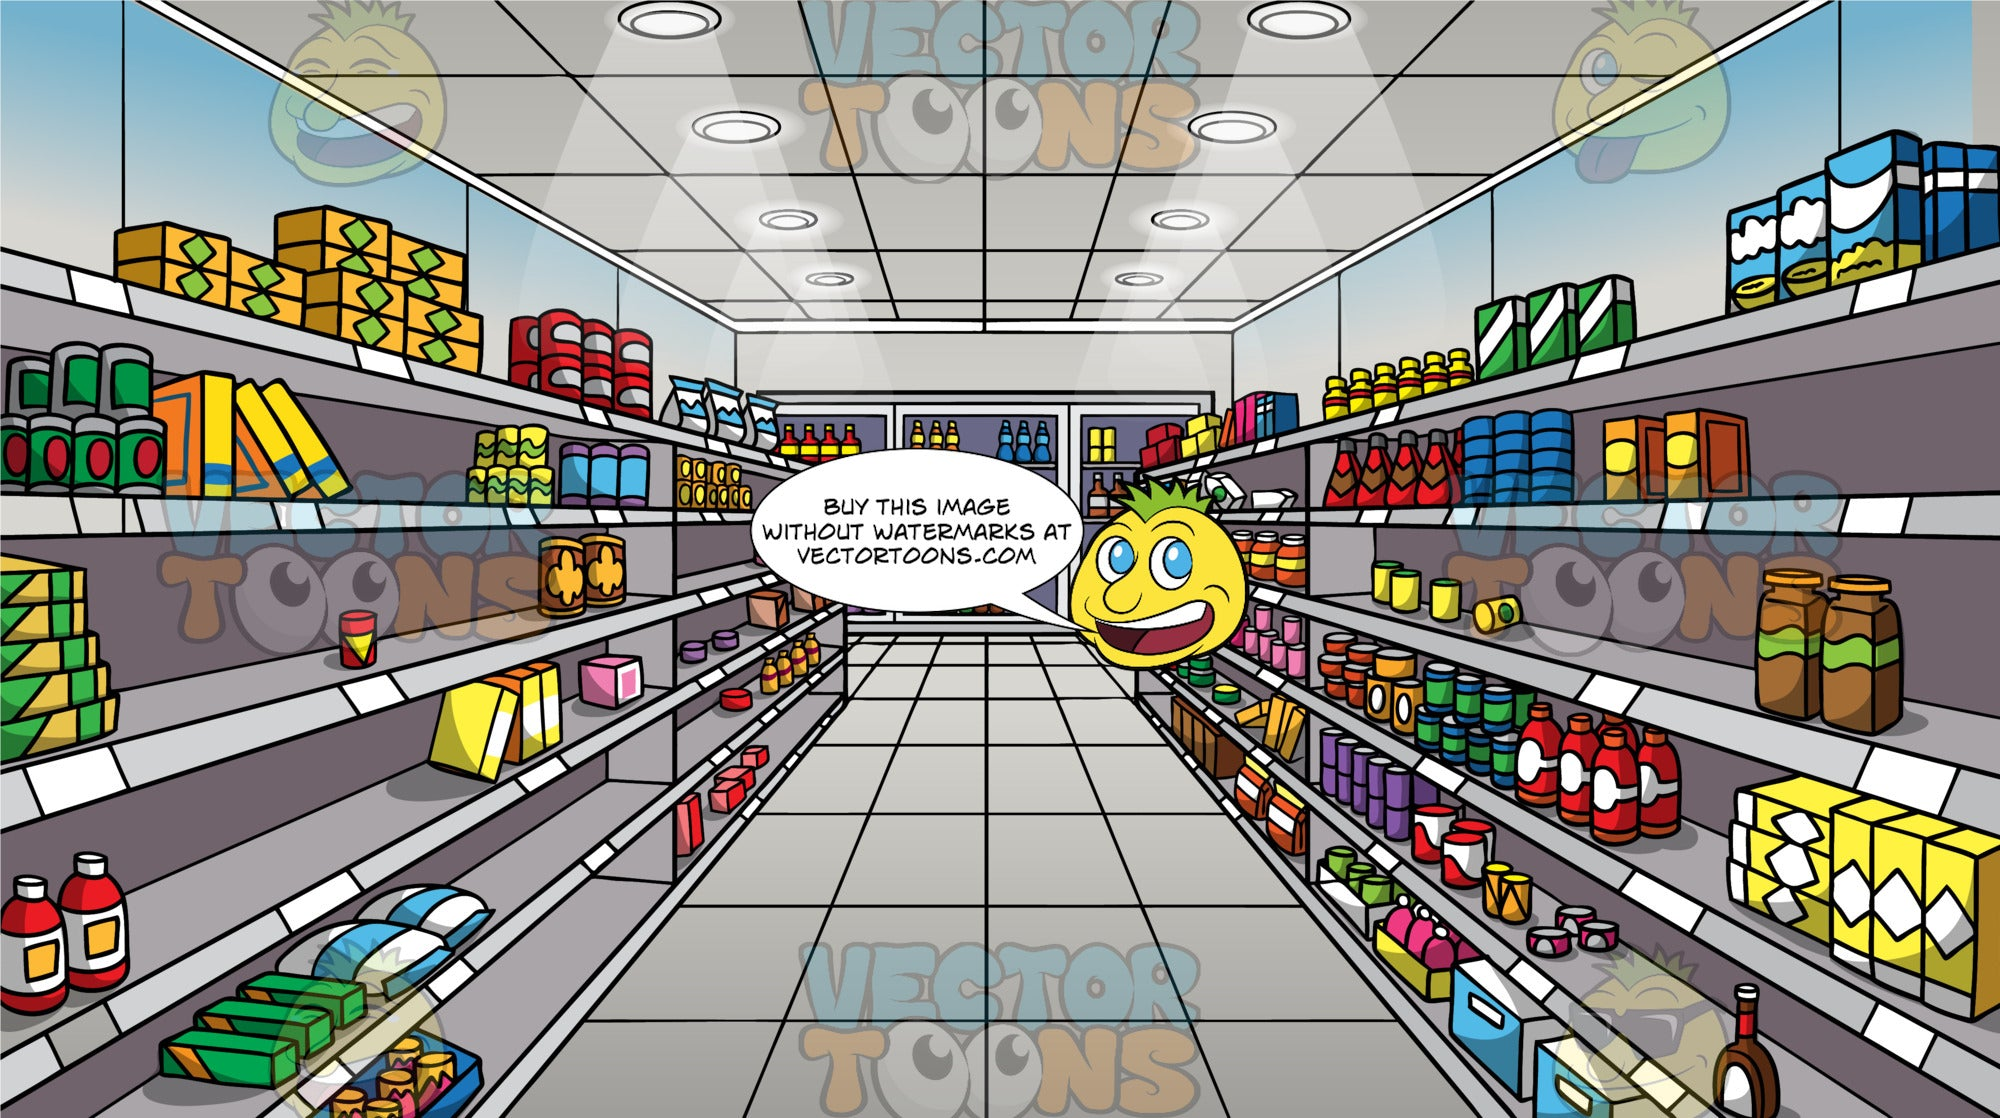 A Grocery Store Aisle With Empty Shelves Background. A brightly lit grocery store aisle with some shelves containing food items and other shelves left empty due to items being sold out